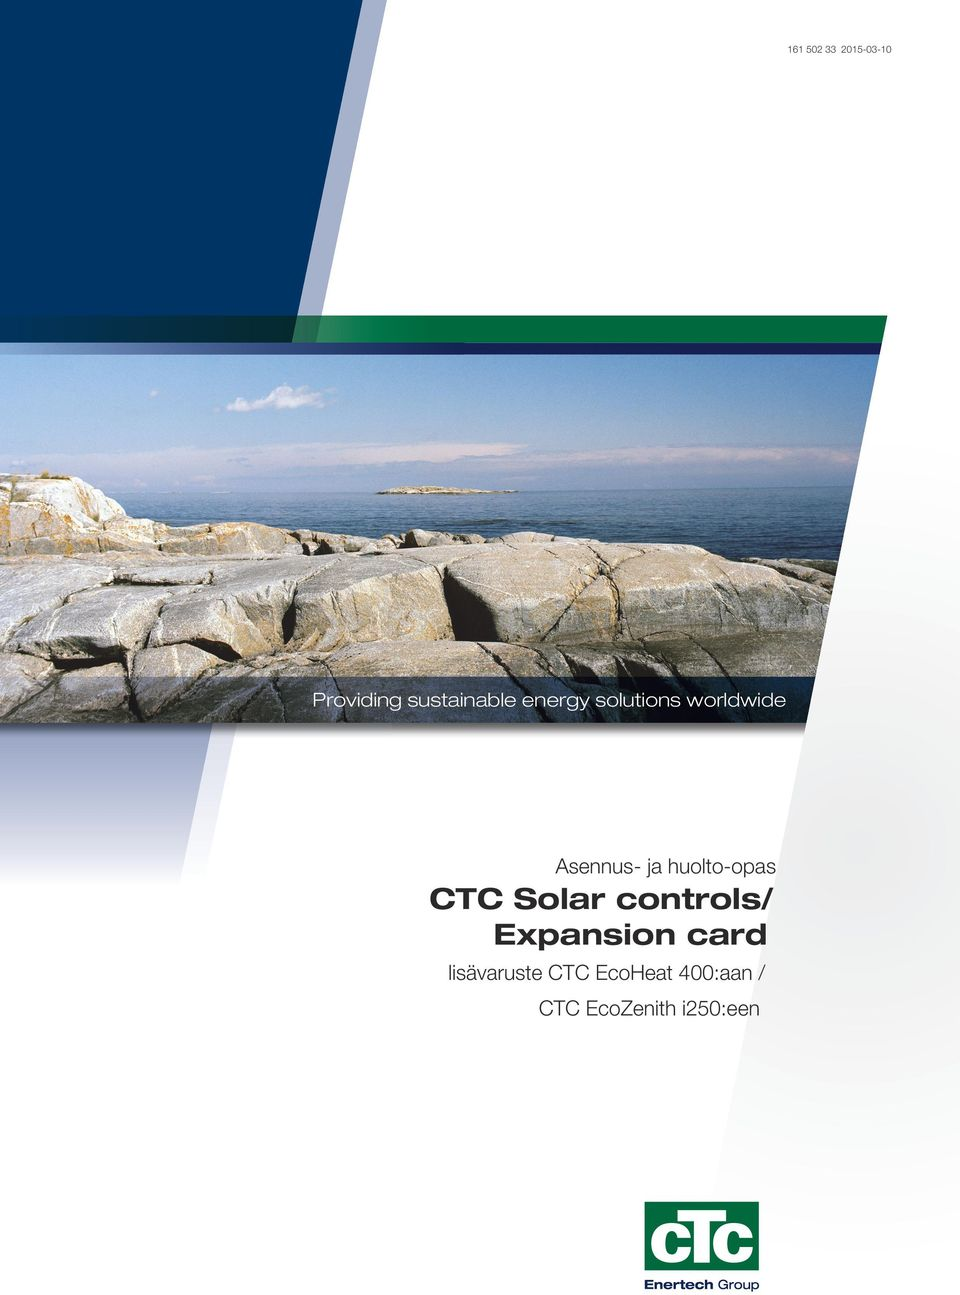 huolto-opas CTC Solar controls/ Expansion card